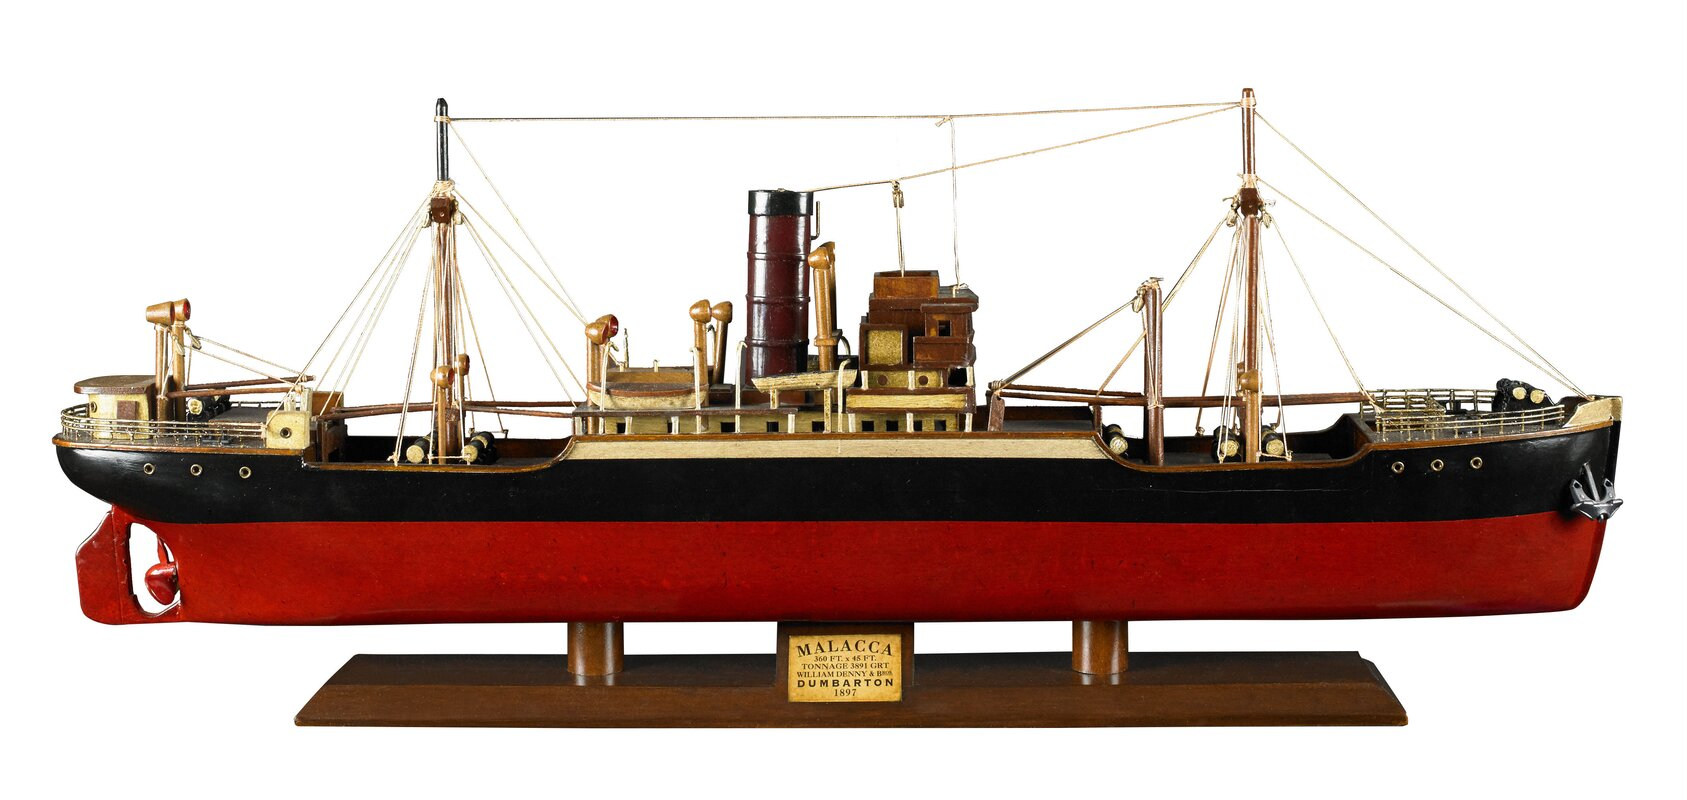 Authentic Models Tramp Steamer Malacca Model Boat Wayfair Ca